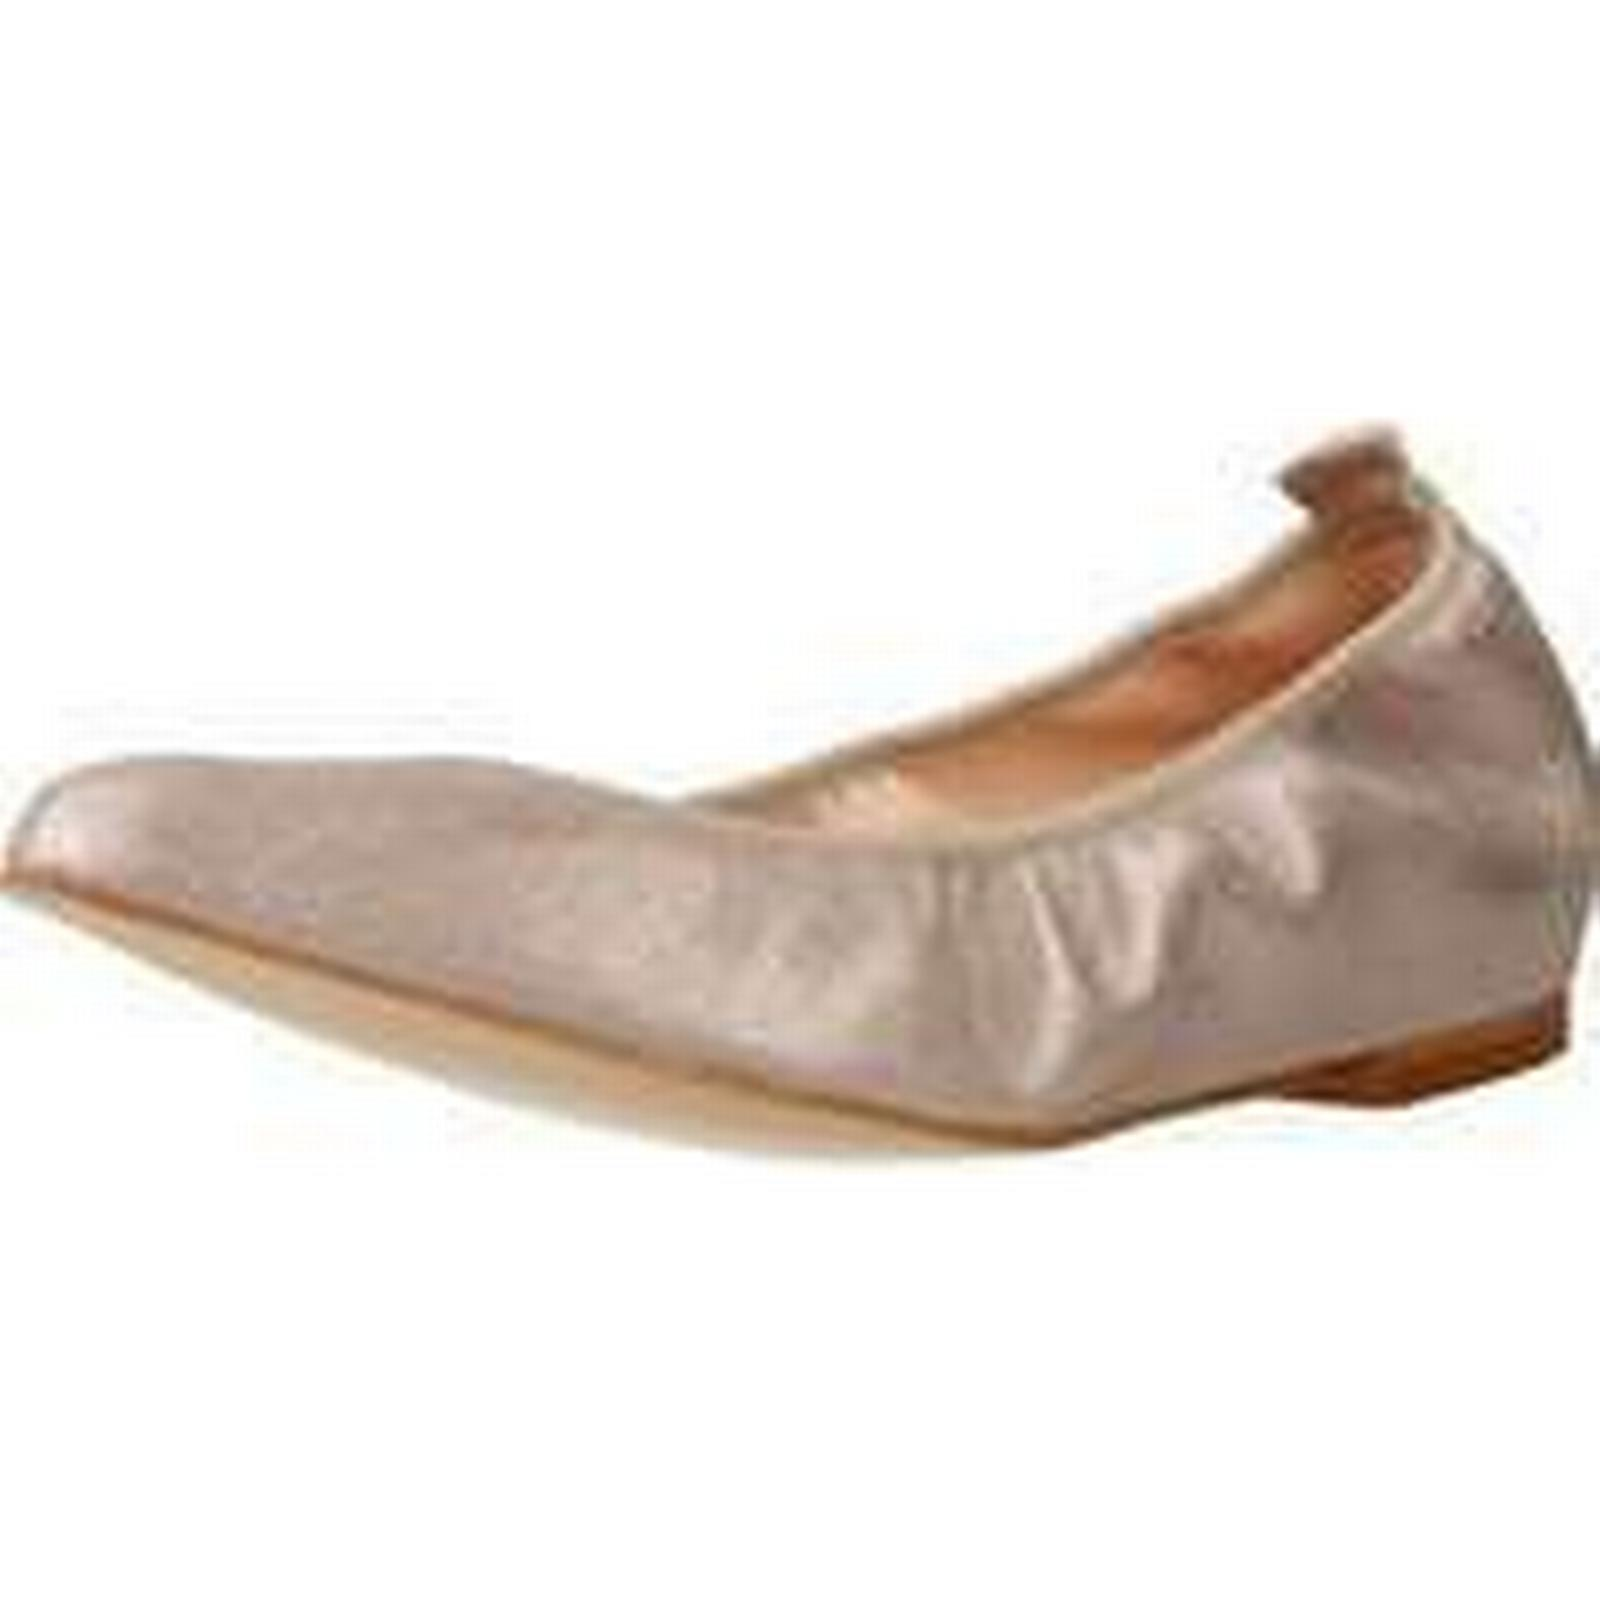 Spartoo.co.uk Mikaela / 17021 women's Shoes (Pumps / Mikaela Ballerinas) in Grey 4b5c94